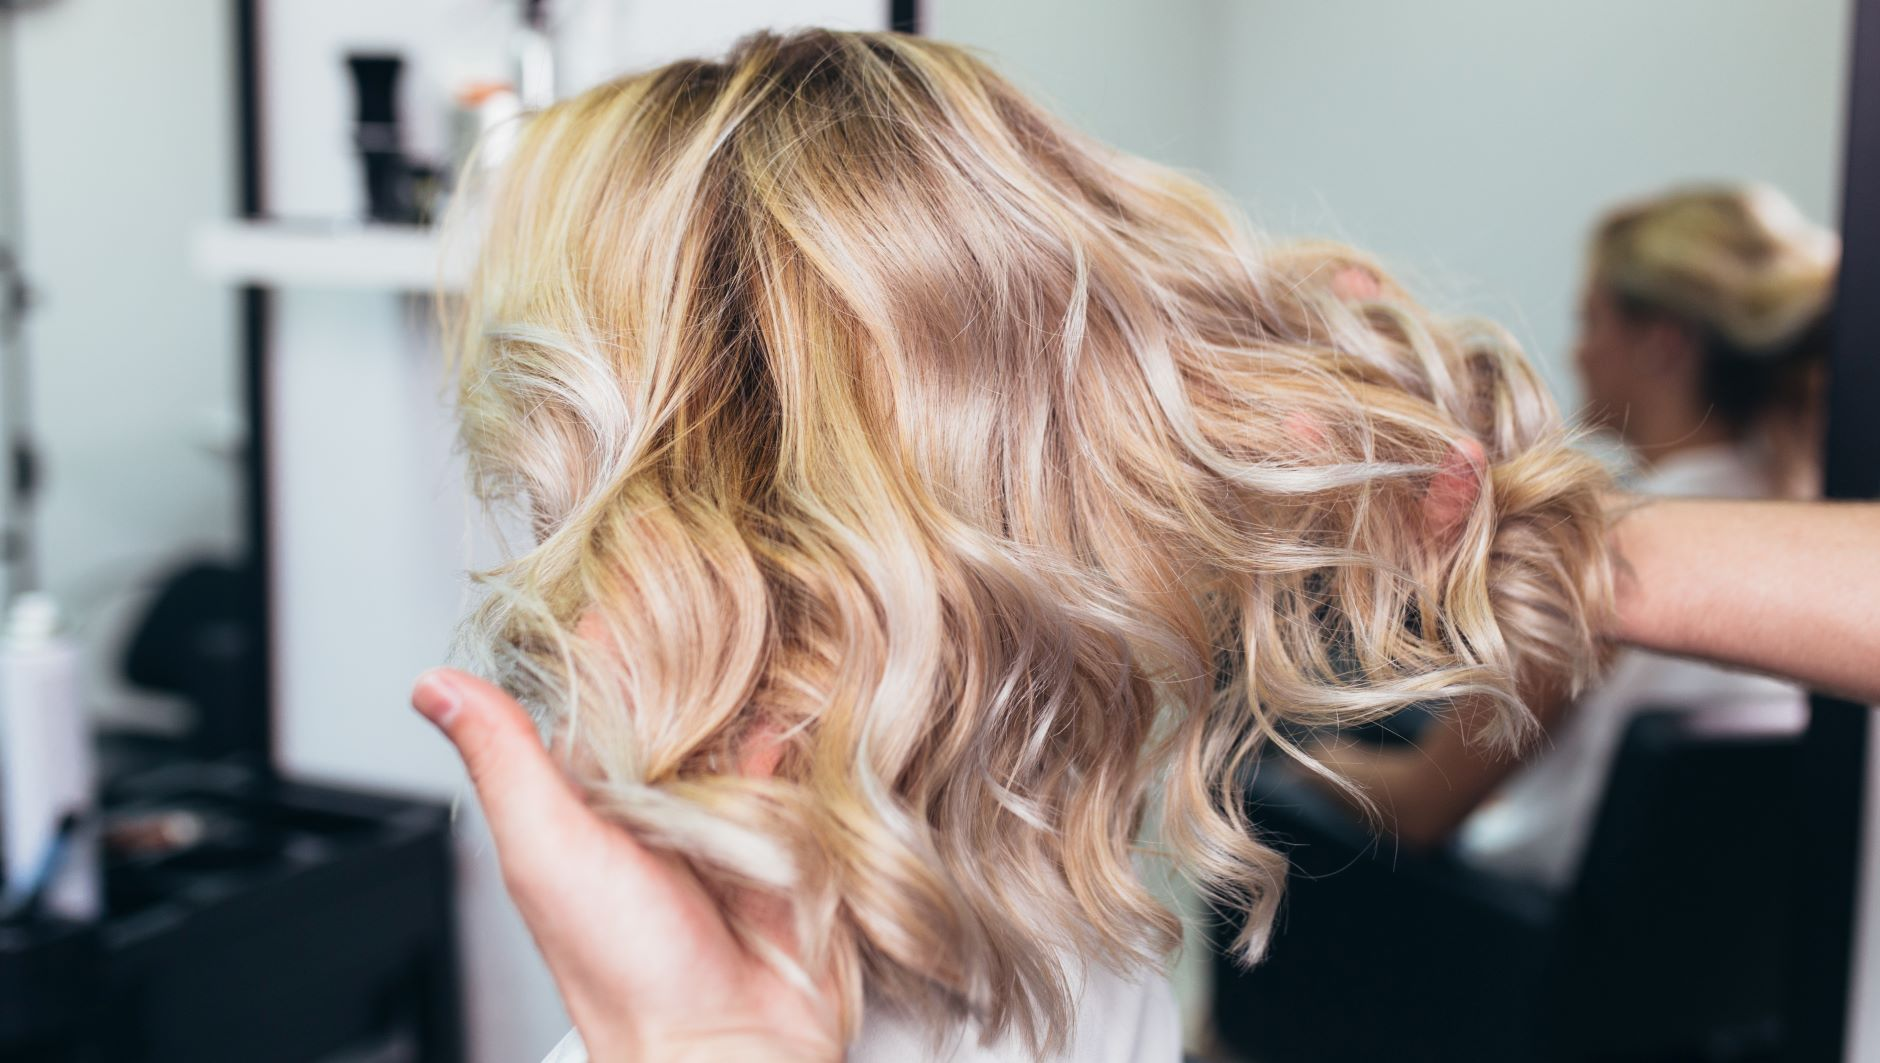 From Balayage to Bleach & Tone, Here's How to Get The Blonde You Asked For